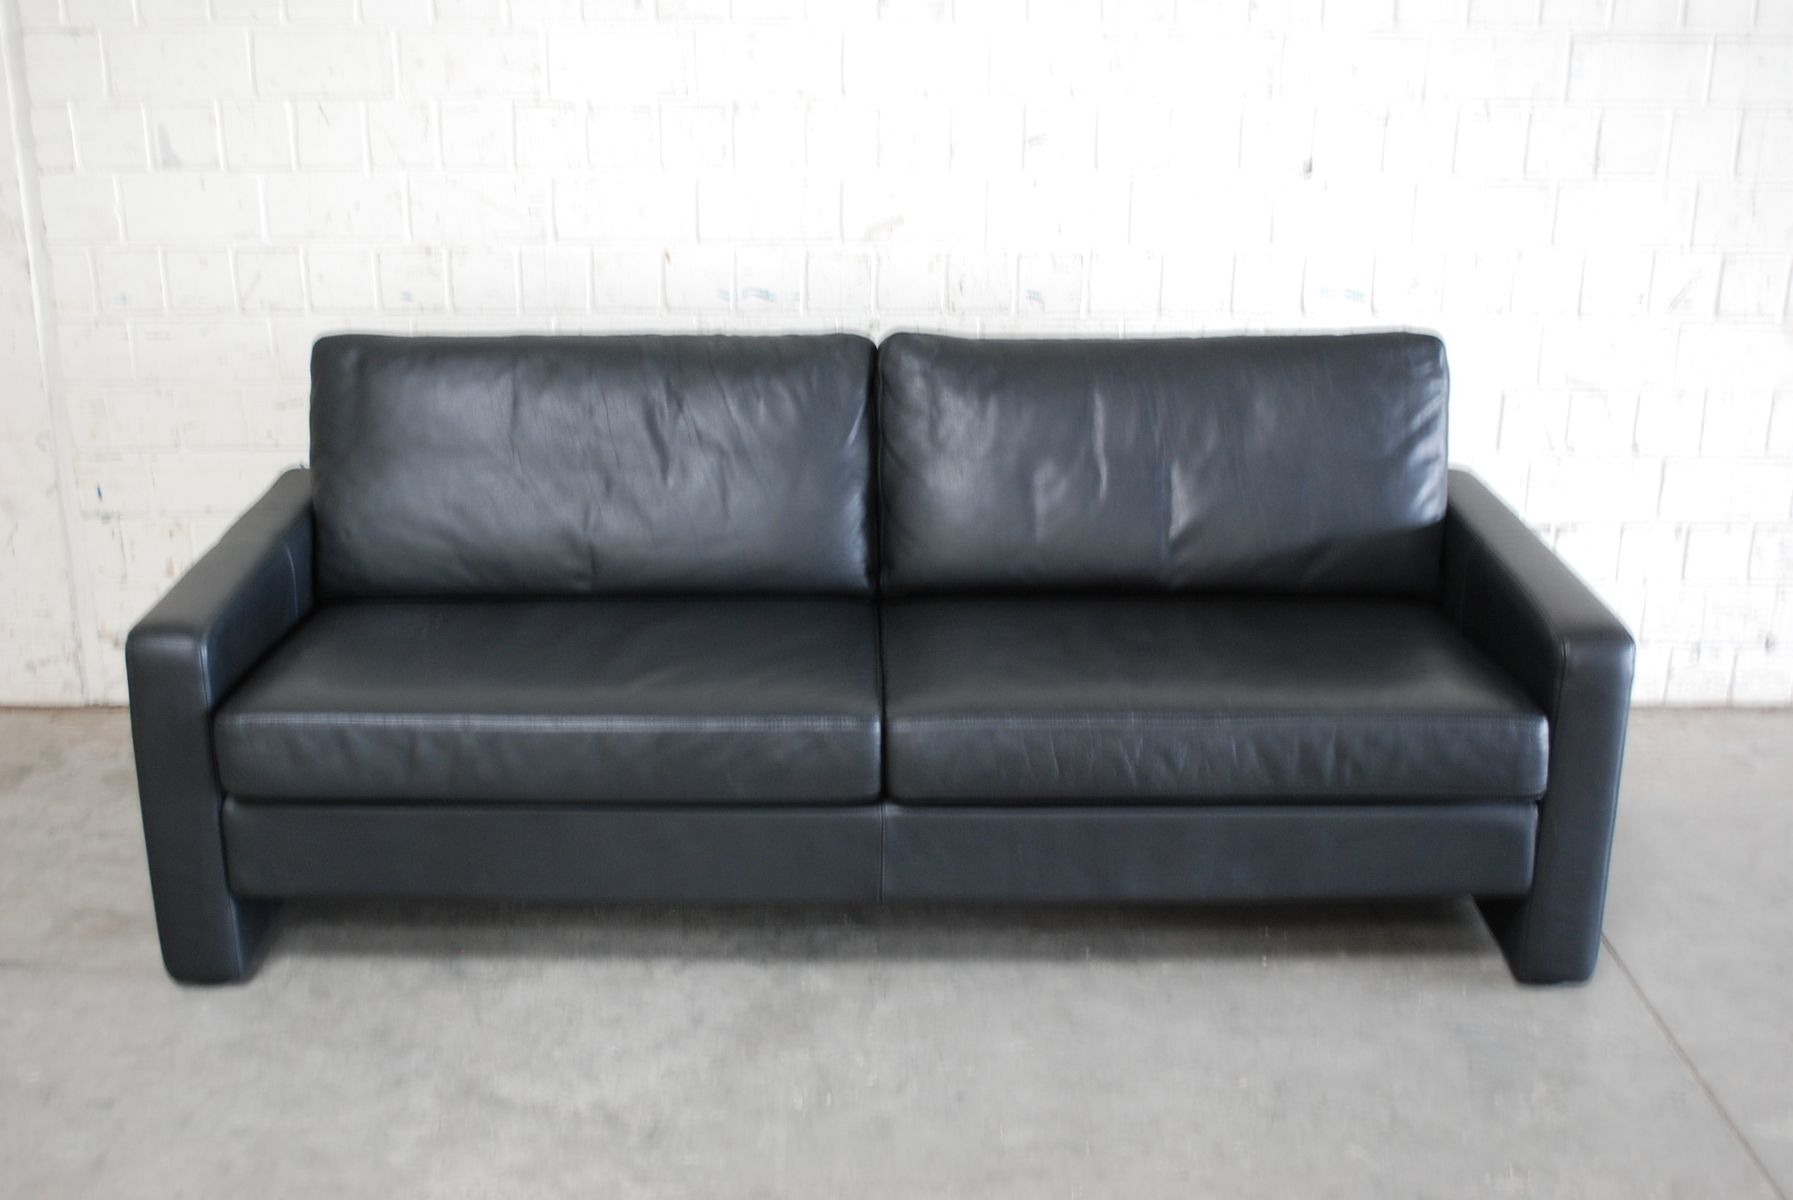 Vintage Black Leather Conseta Sofa From Cor For Sale At Pamono